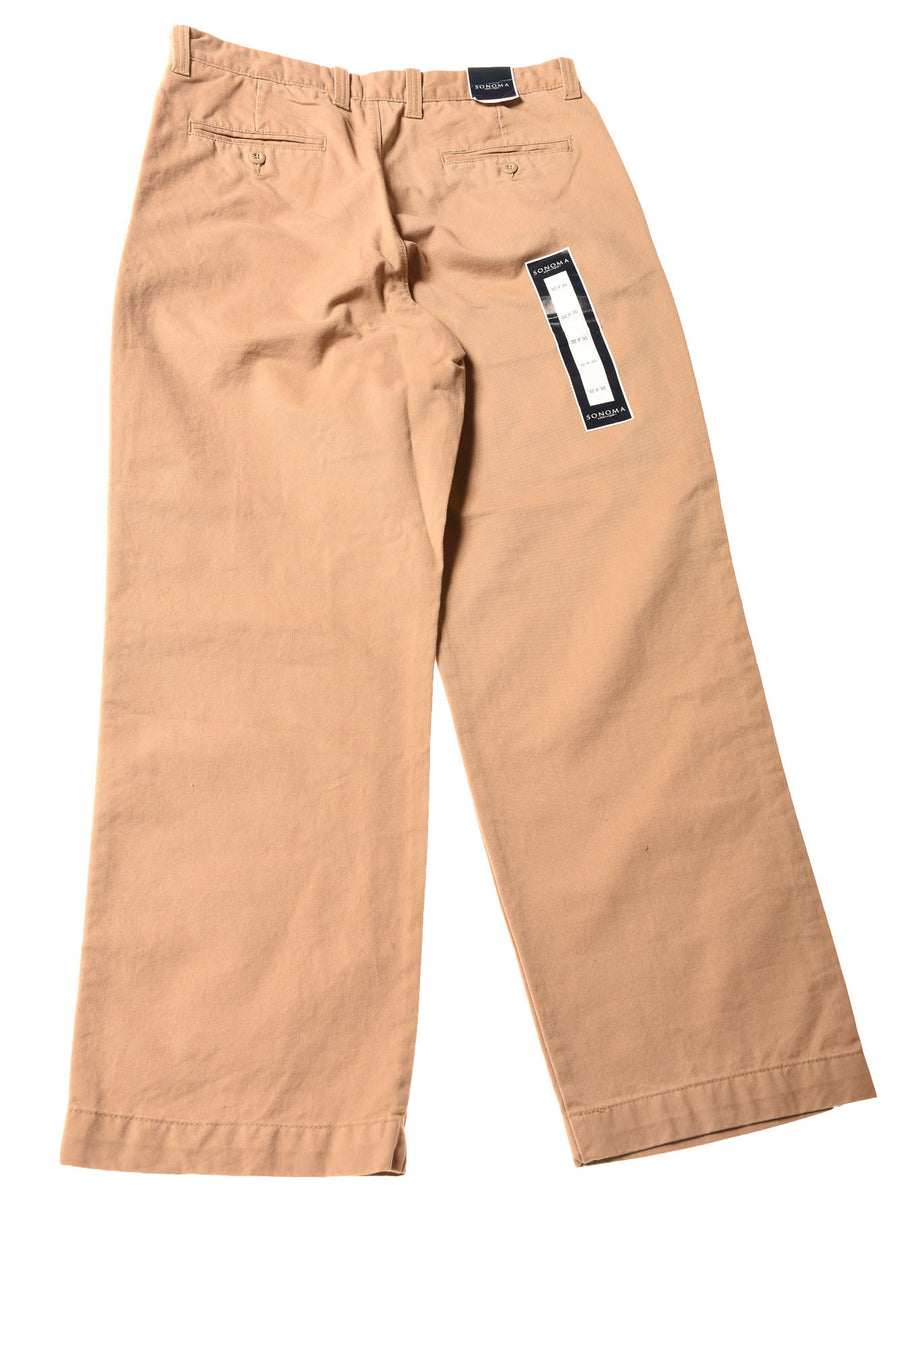 NEW Sonoma Men's Slacks 32x30 Carmel